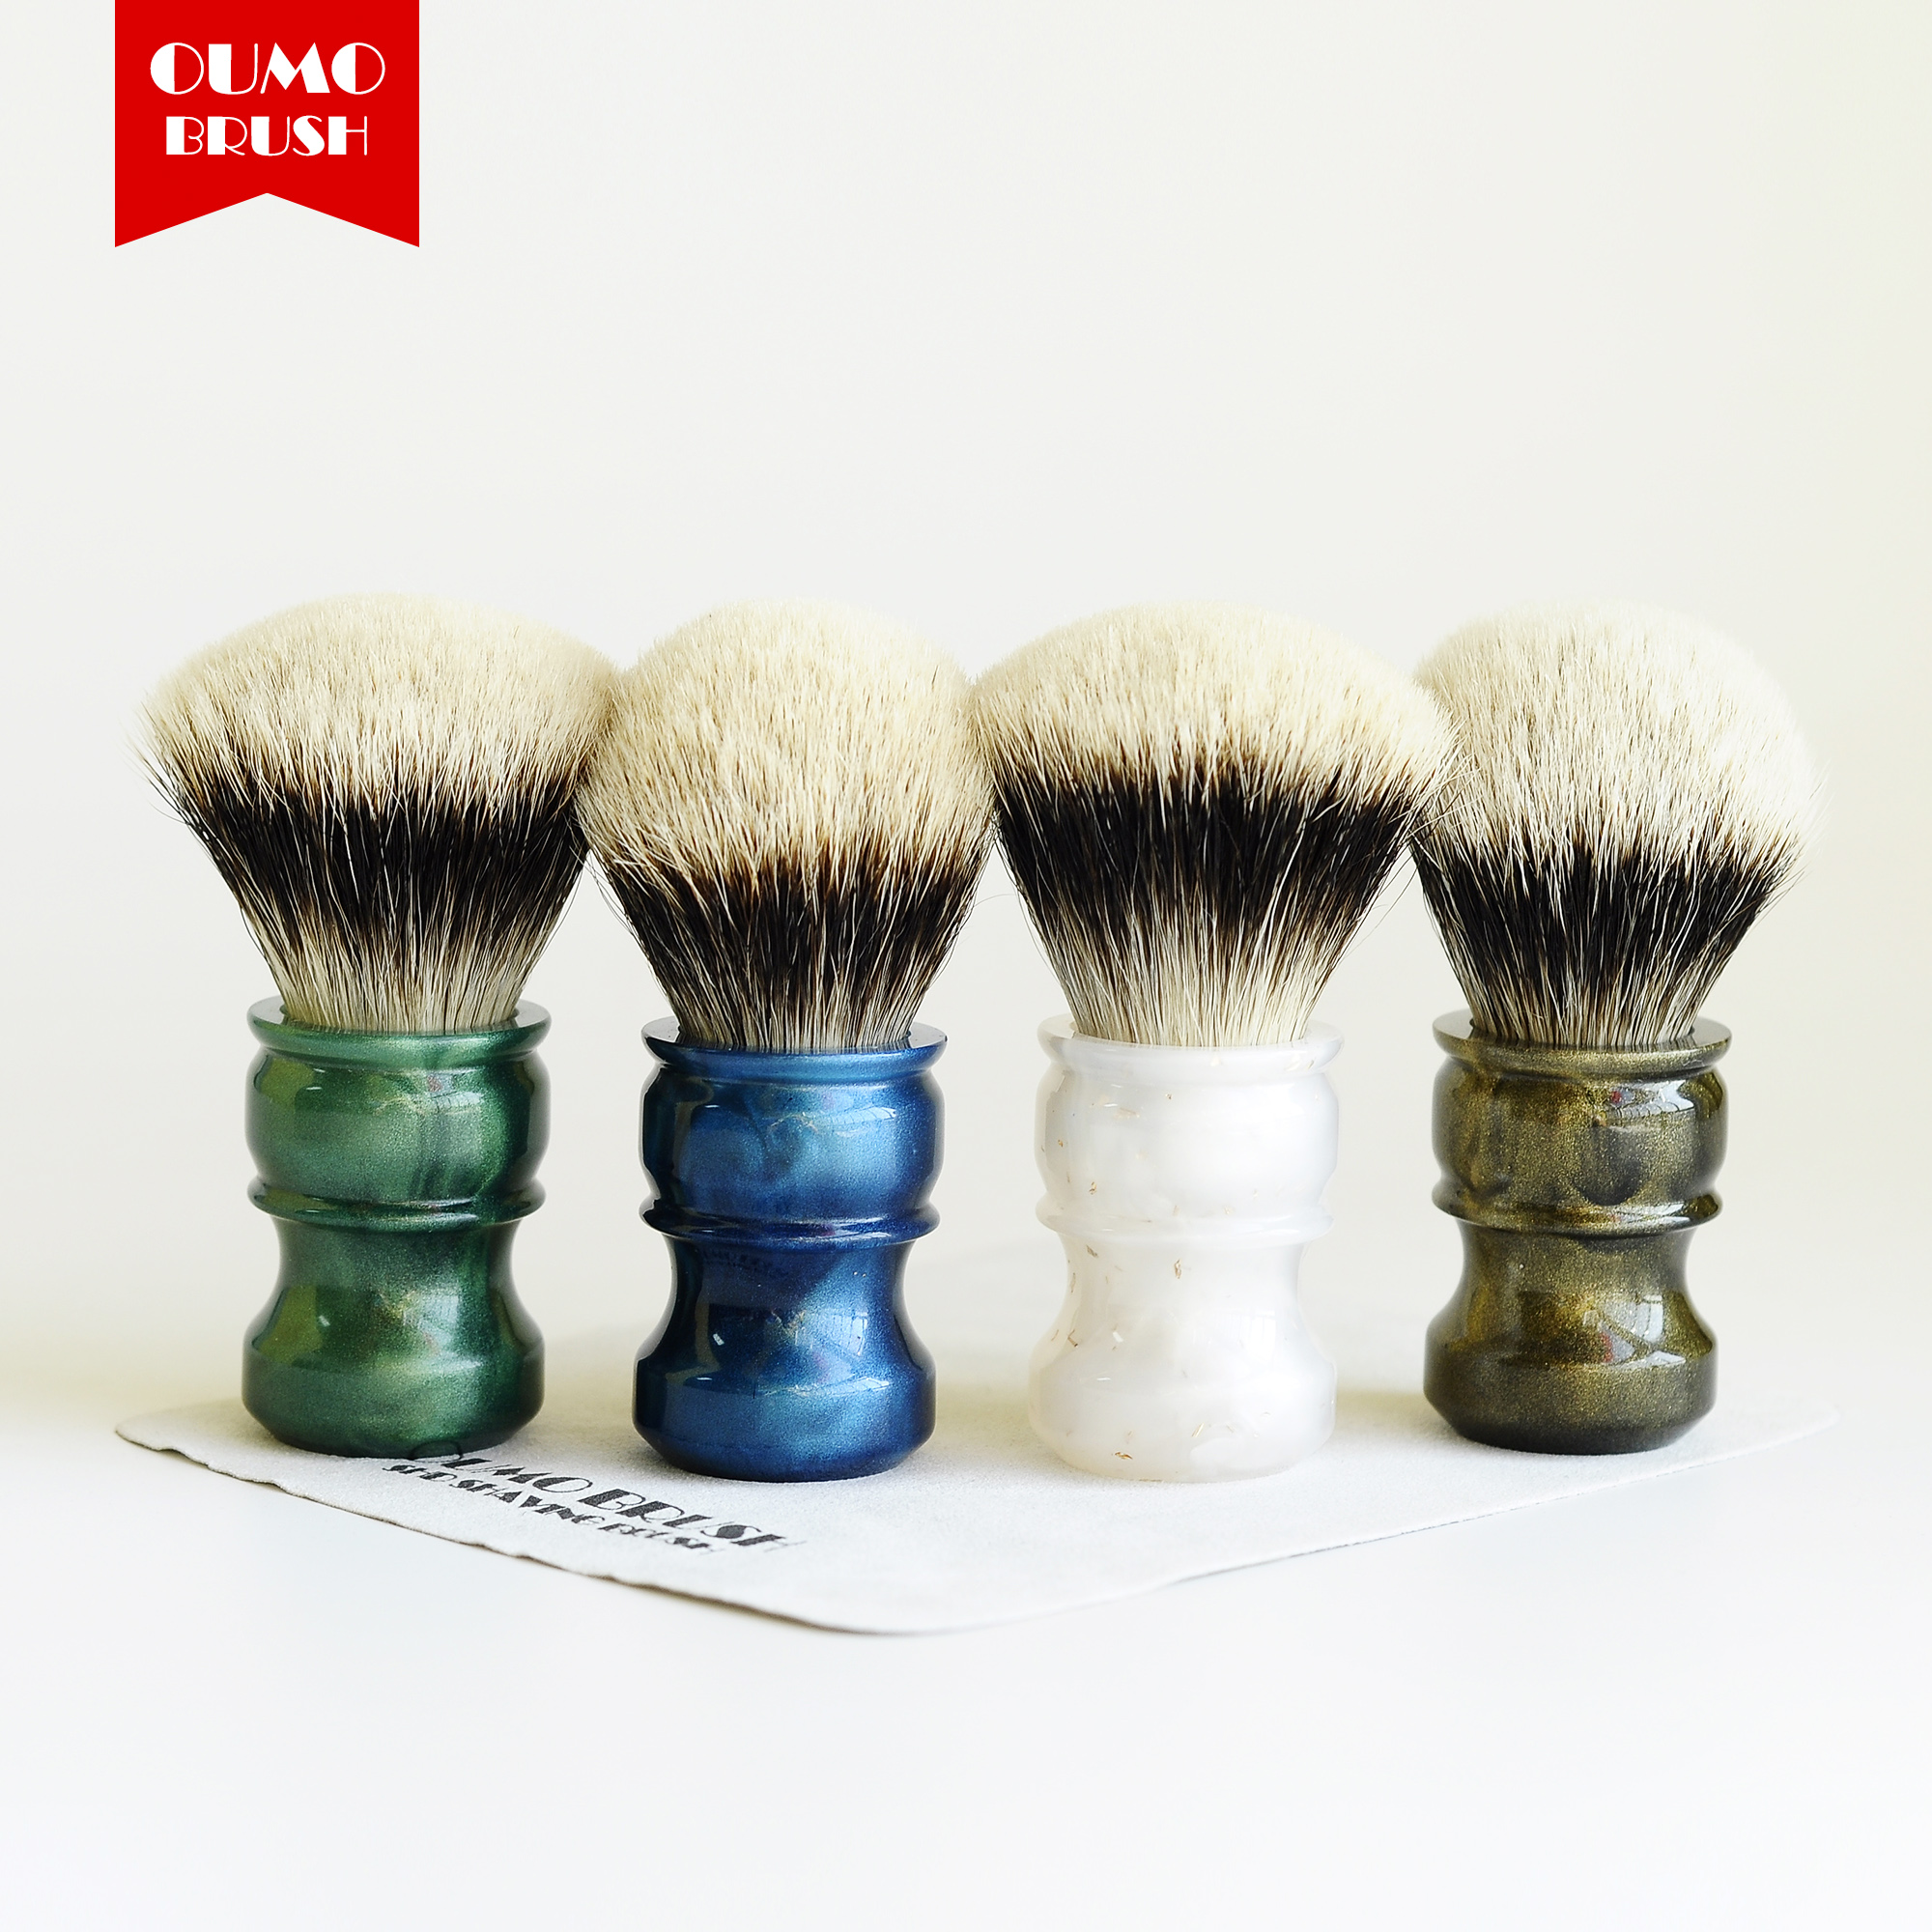 OUMO BRUSH- Fans Exclusive Limit Shaving Brush With SHD WT Finest 2band Fan Badger Knots Shaving Brush Knot